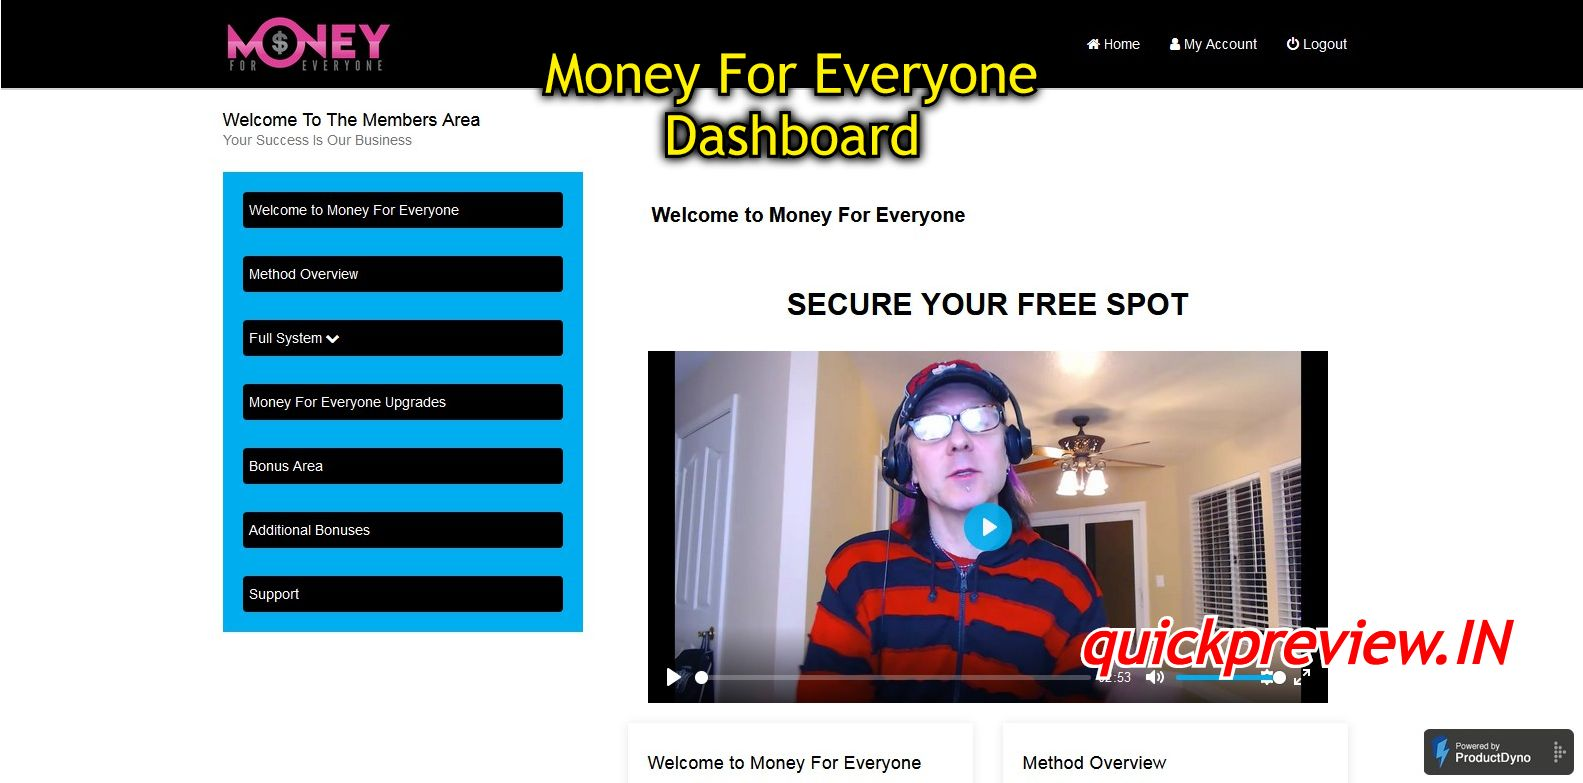 Money For Everyone dashboard